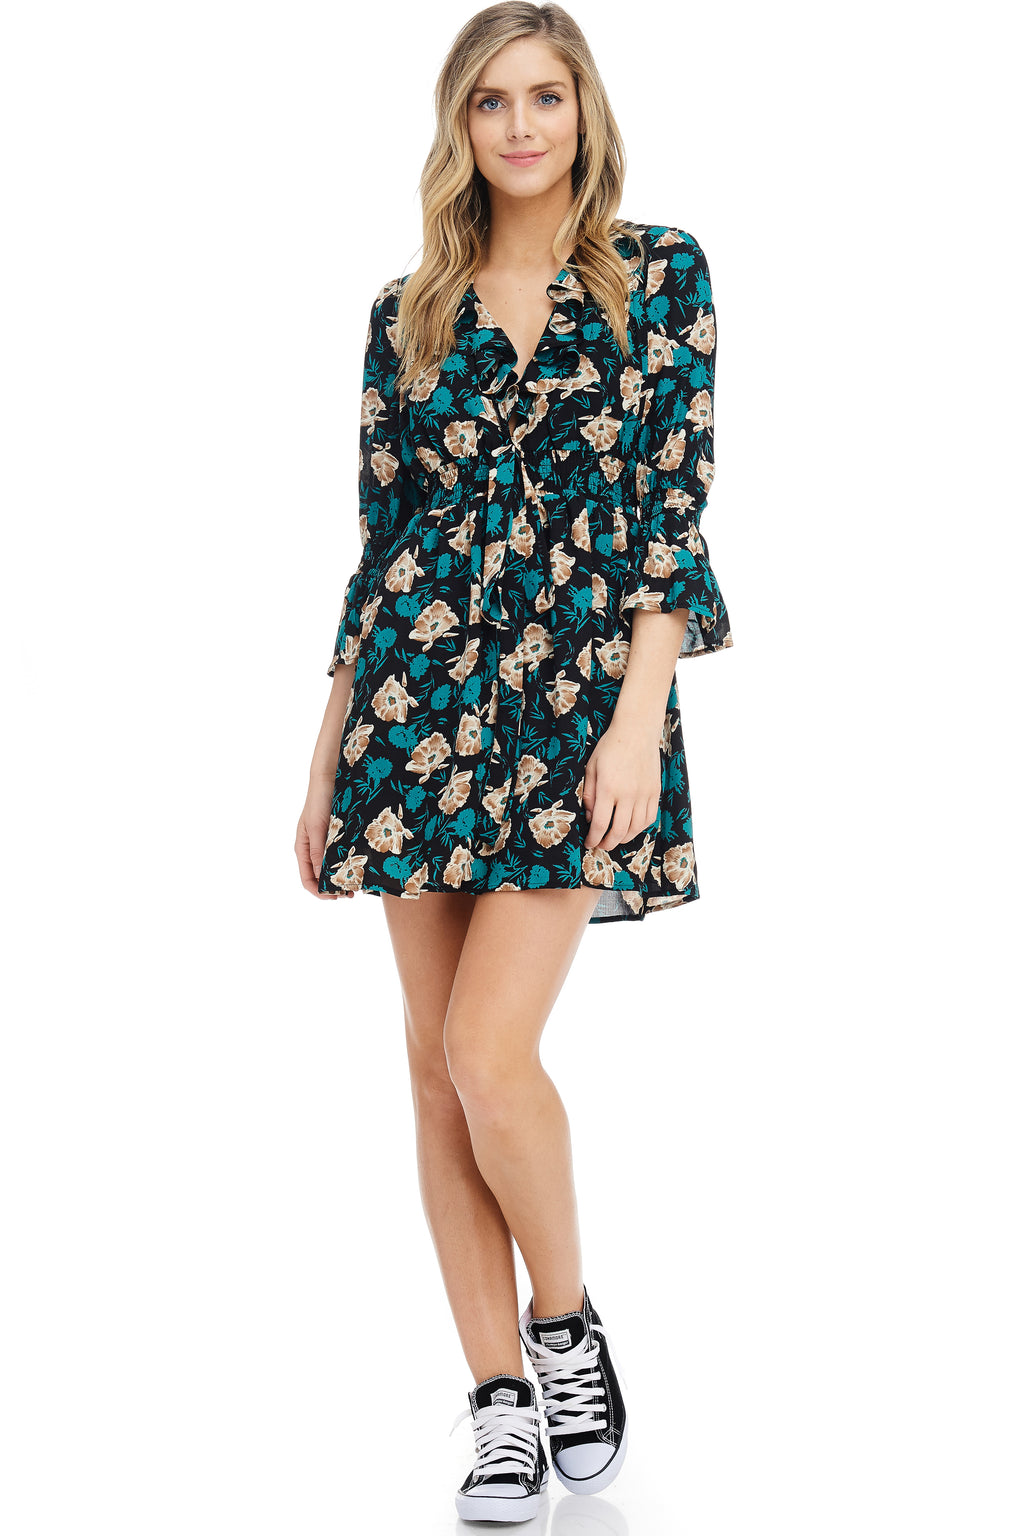 *Pre-Order* W18-170 Floral Ruffled Dress